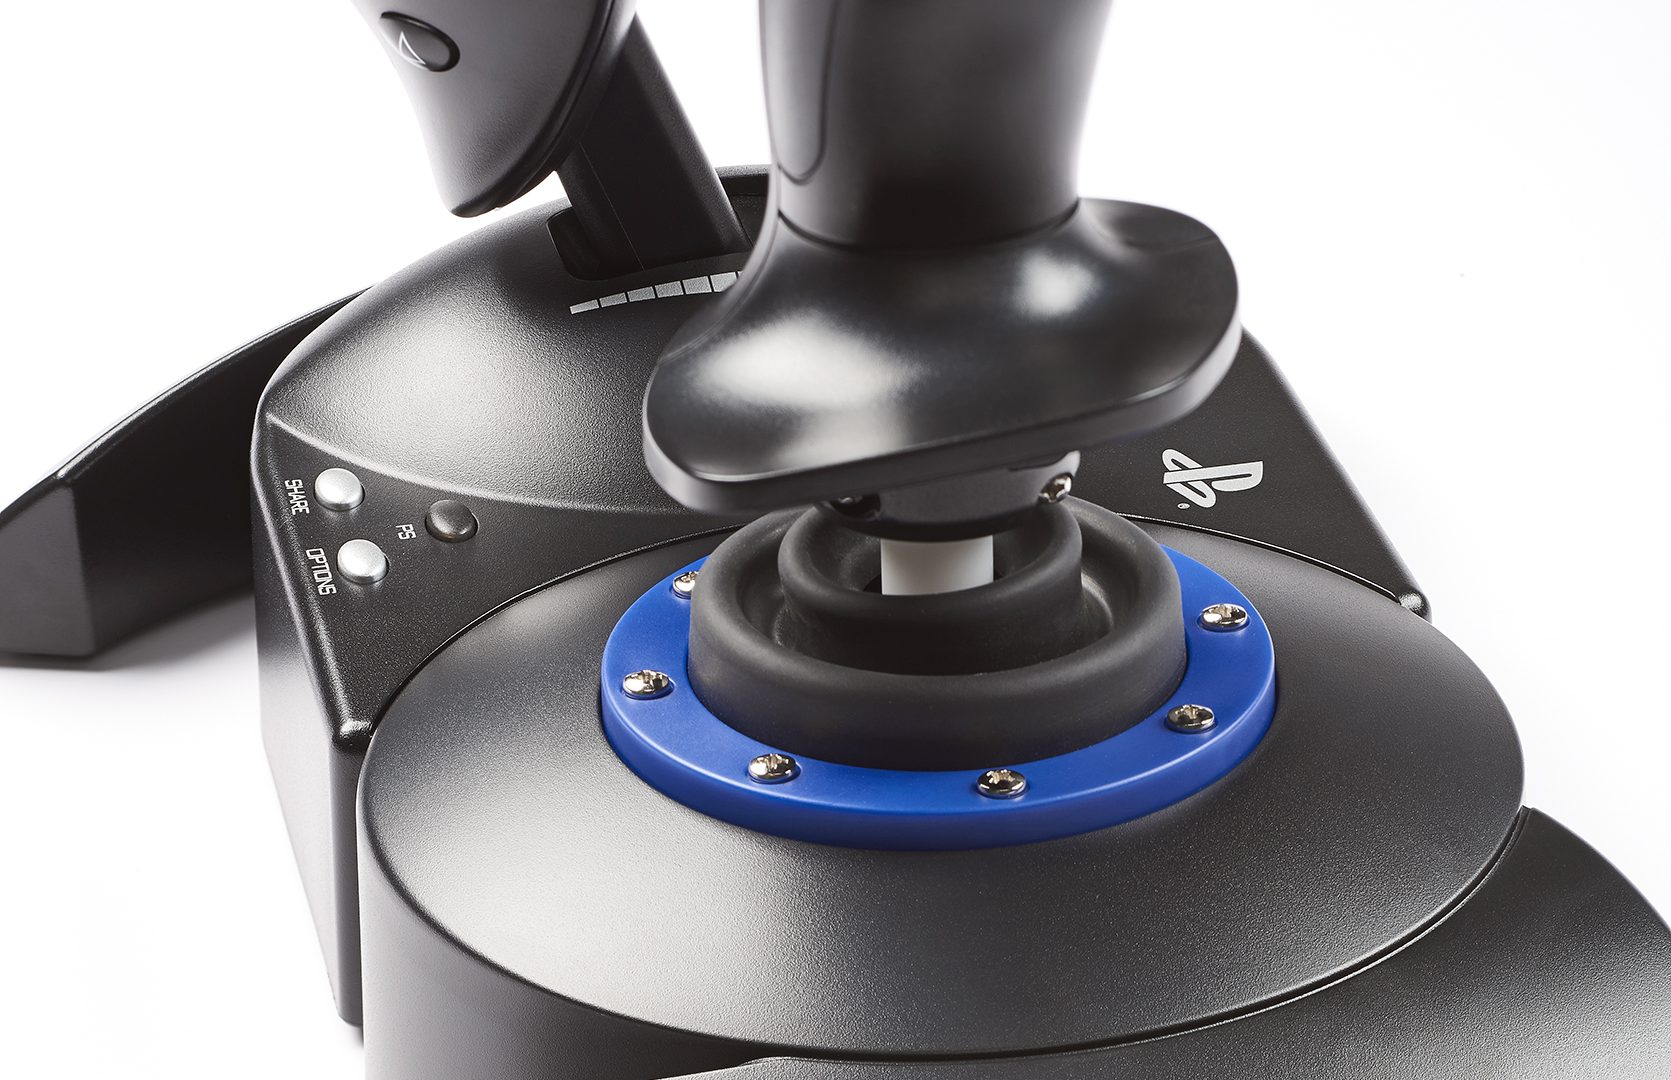 Thrustmaster announces limited edition flight stick for Ace